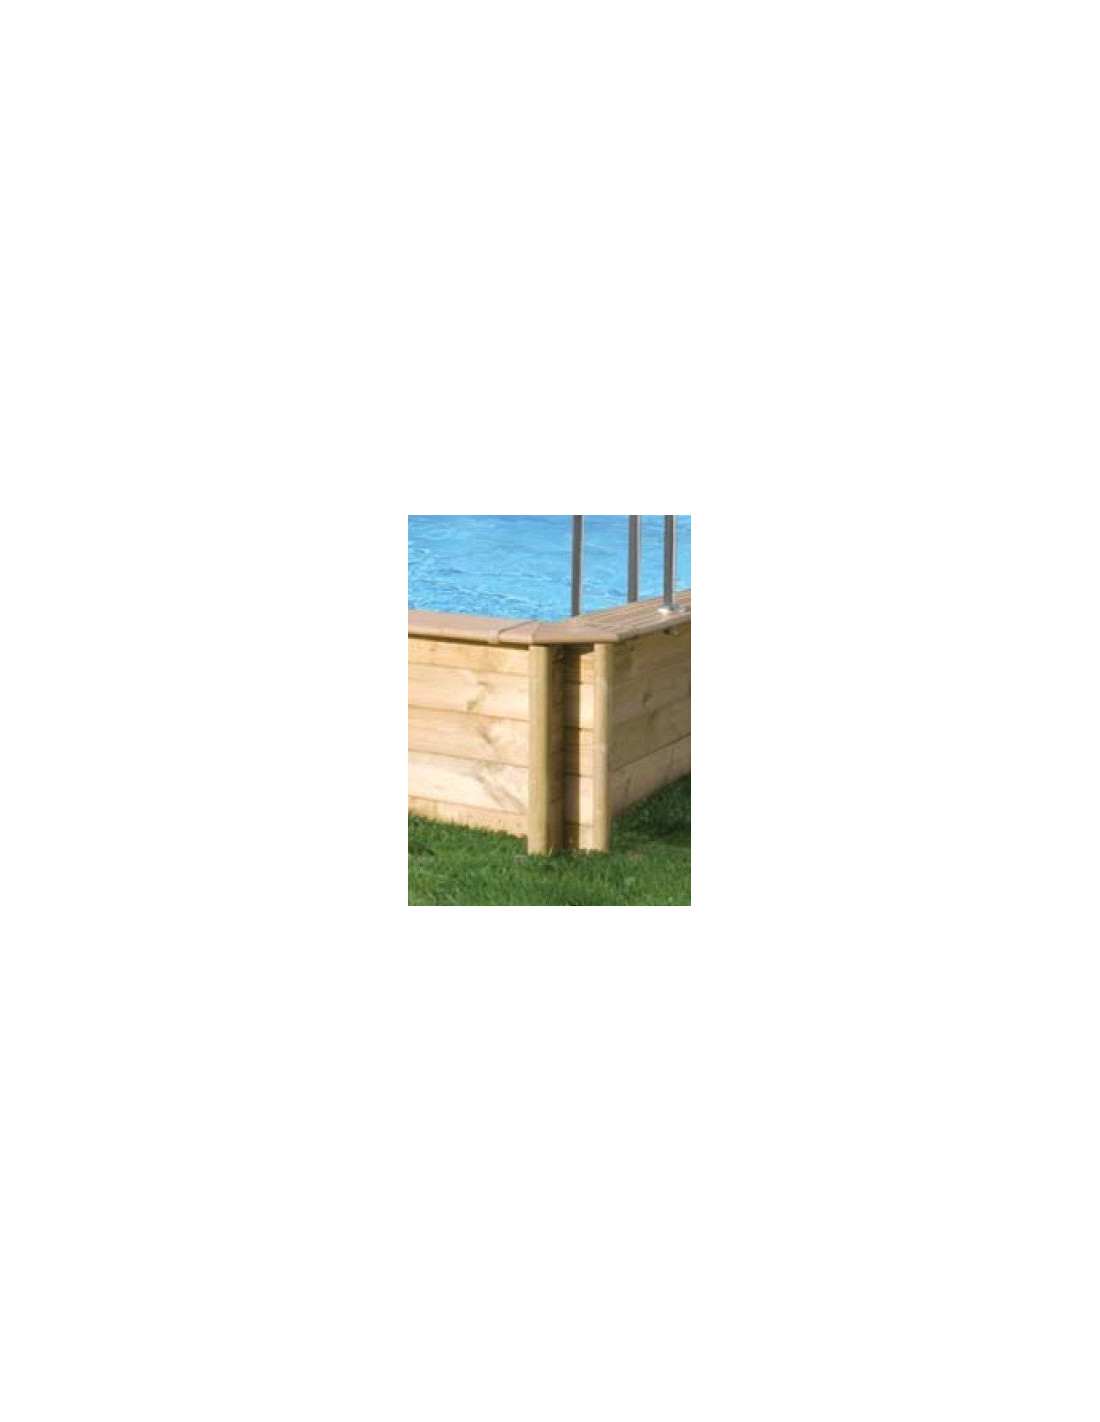 Piscine weva rectangulaire 8 54m x 4 54m x 1 46m home for Piscine weva